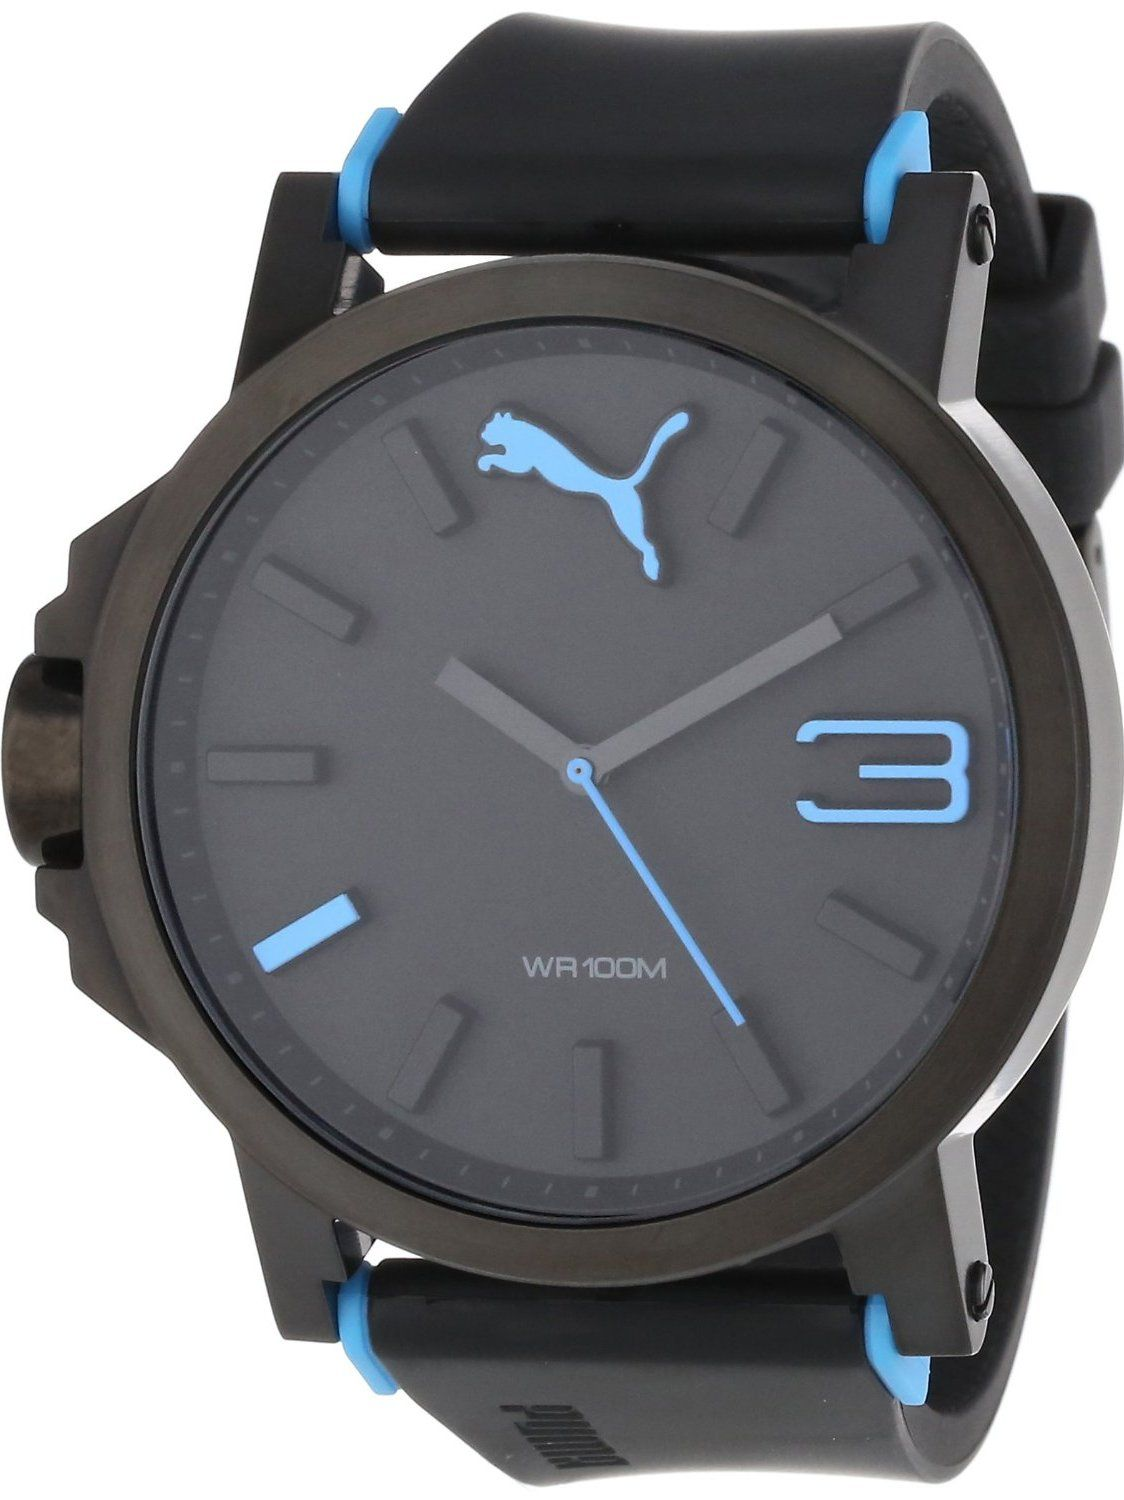 puma name watch s brands pin watches blue men analogue ultrasize